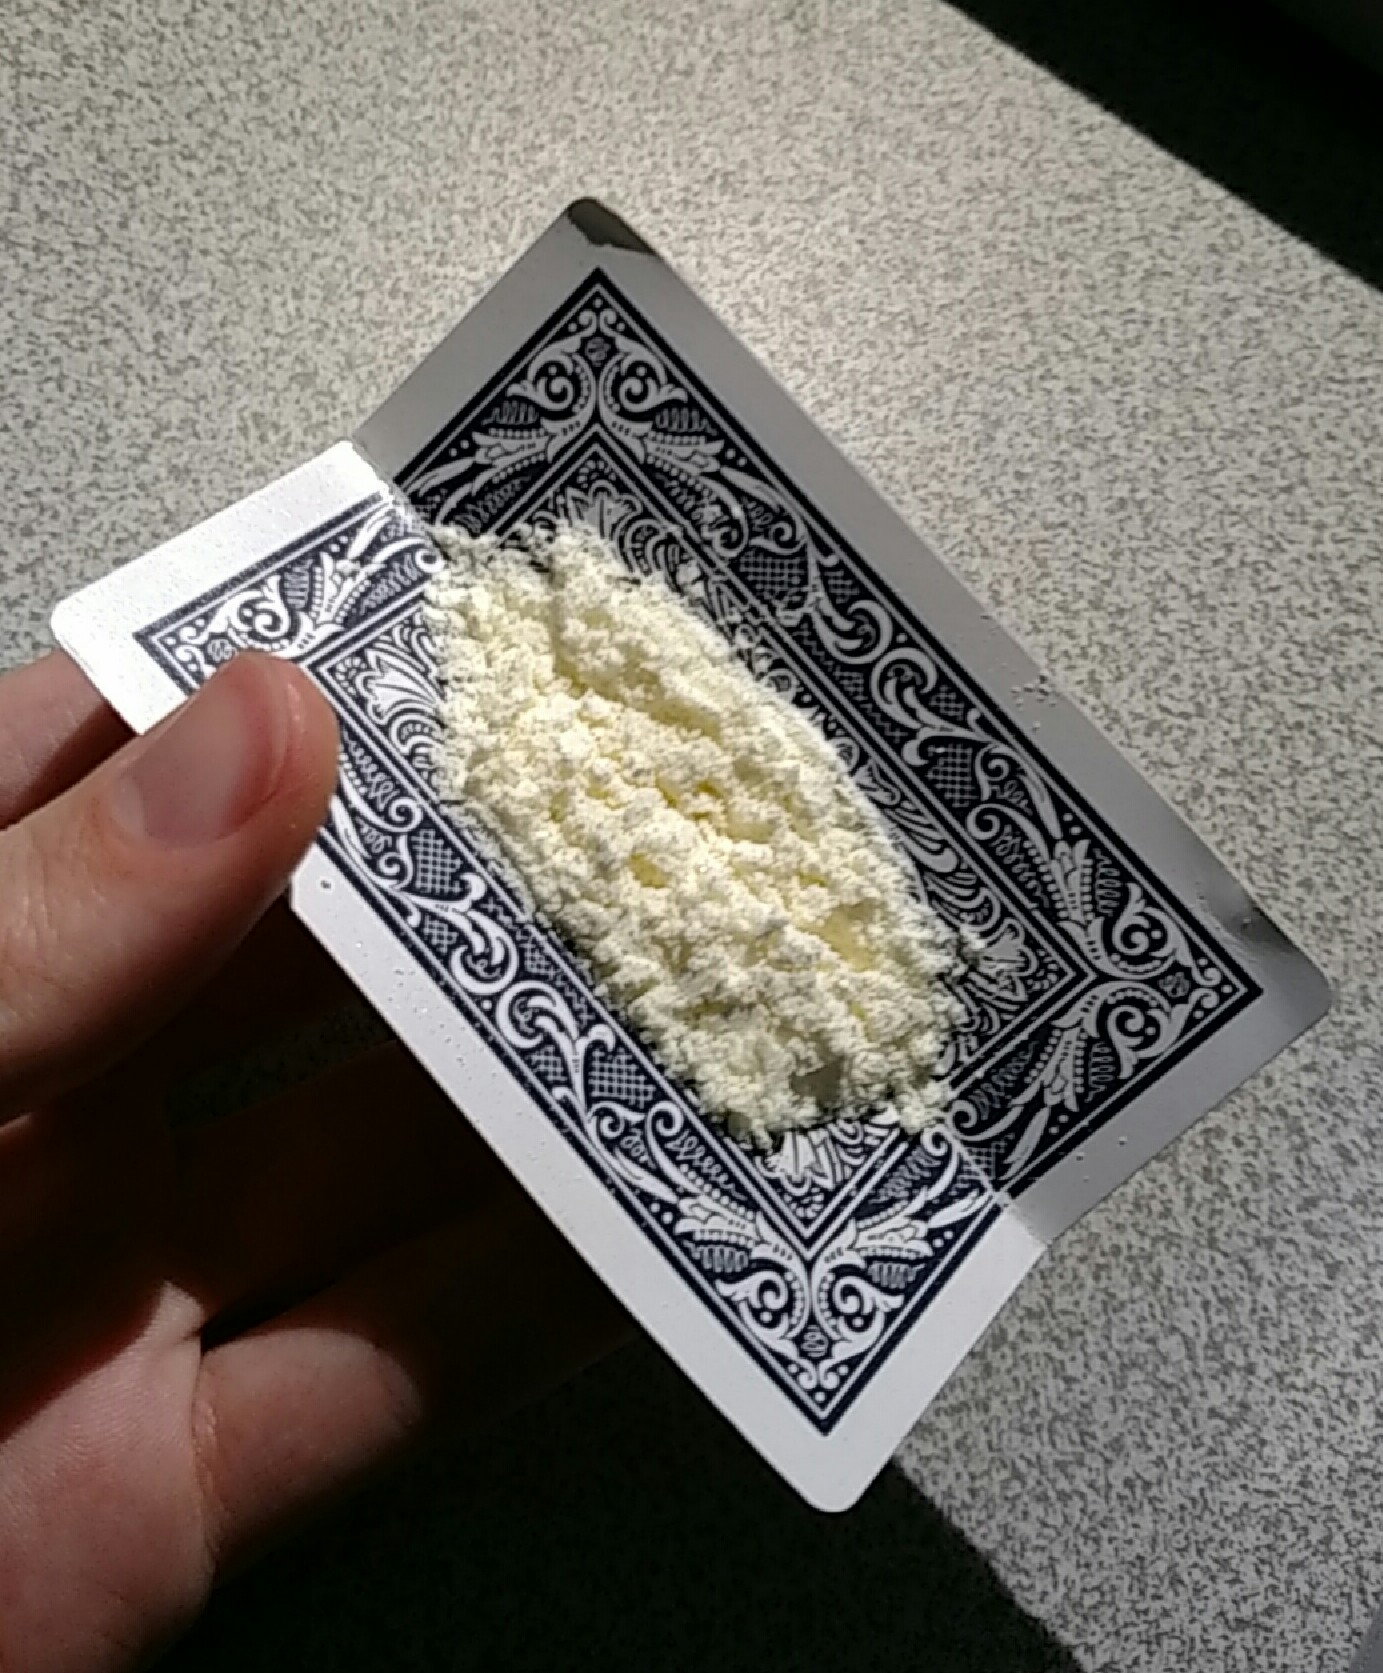 Dimethyltryptamine (DMT)